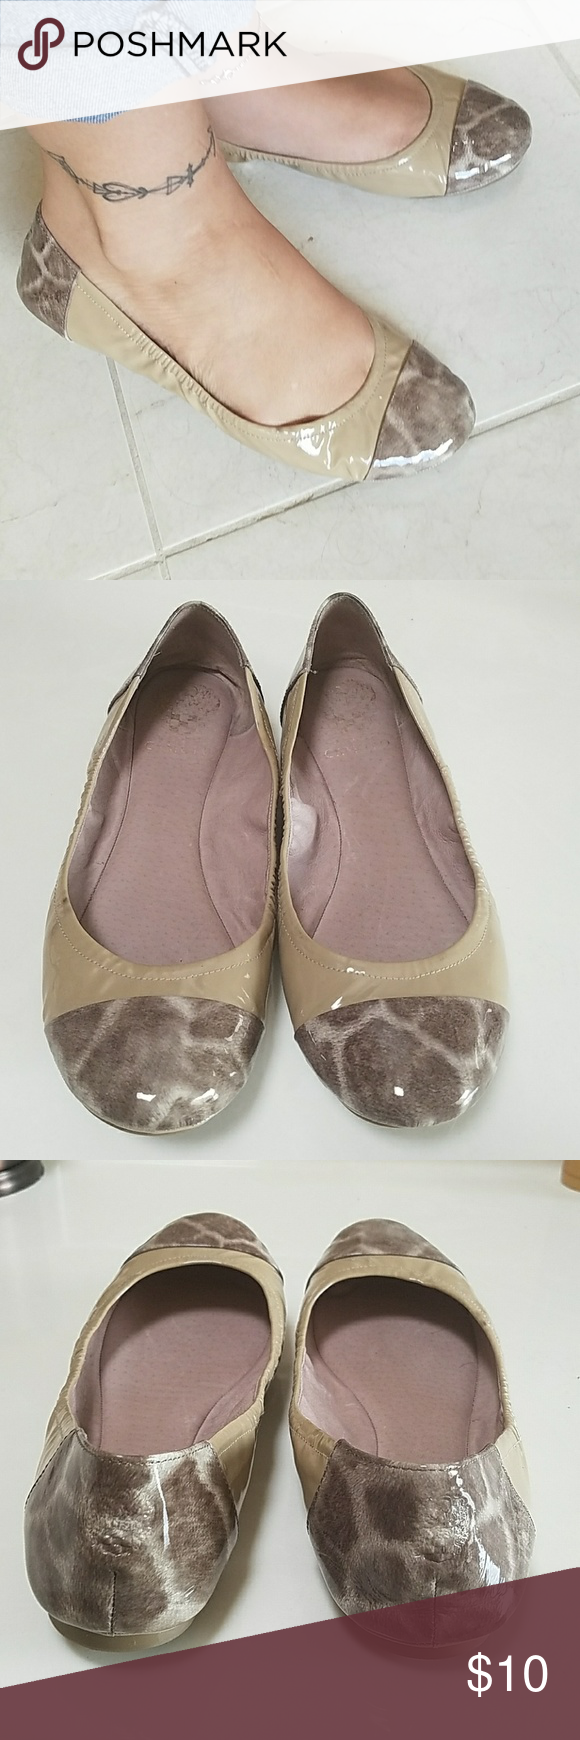 Vince Camuto flats Slightly used. Animal print & taupish/deep beige color. One mark on the inner part of right shoe (see pic) unnoticeable though only you would know it's there. These will you last you a while. Not trying to make money off these just want someone to enjoy. Purchased from DSW. Shoes Flats & Loafers